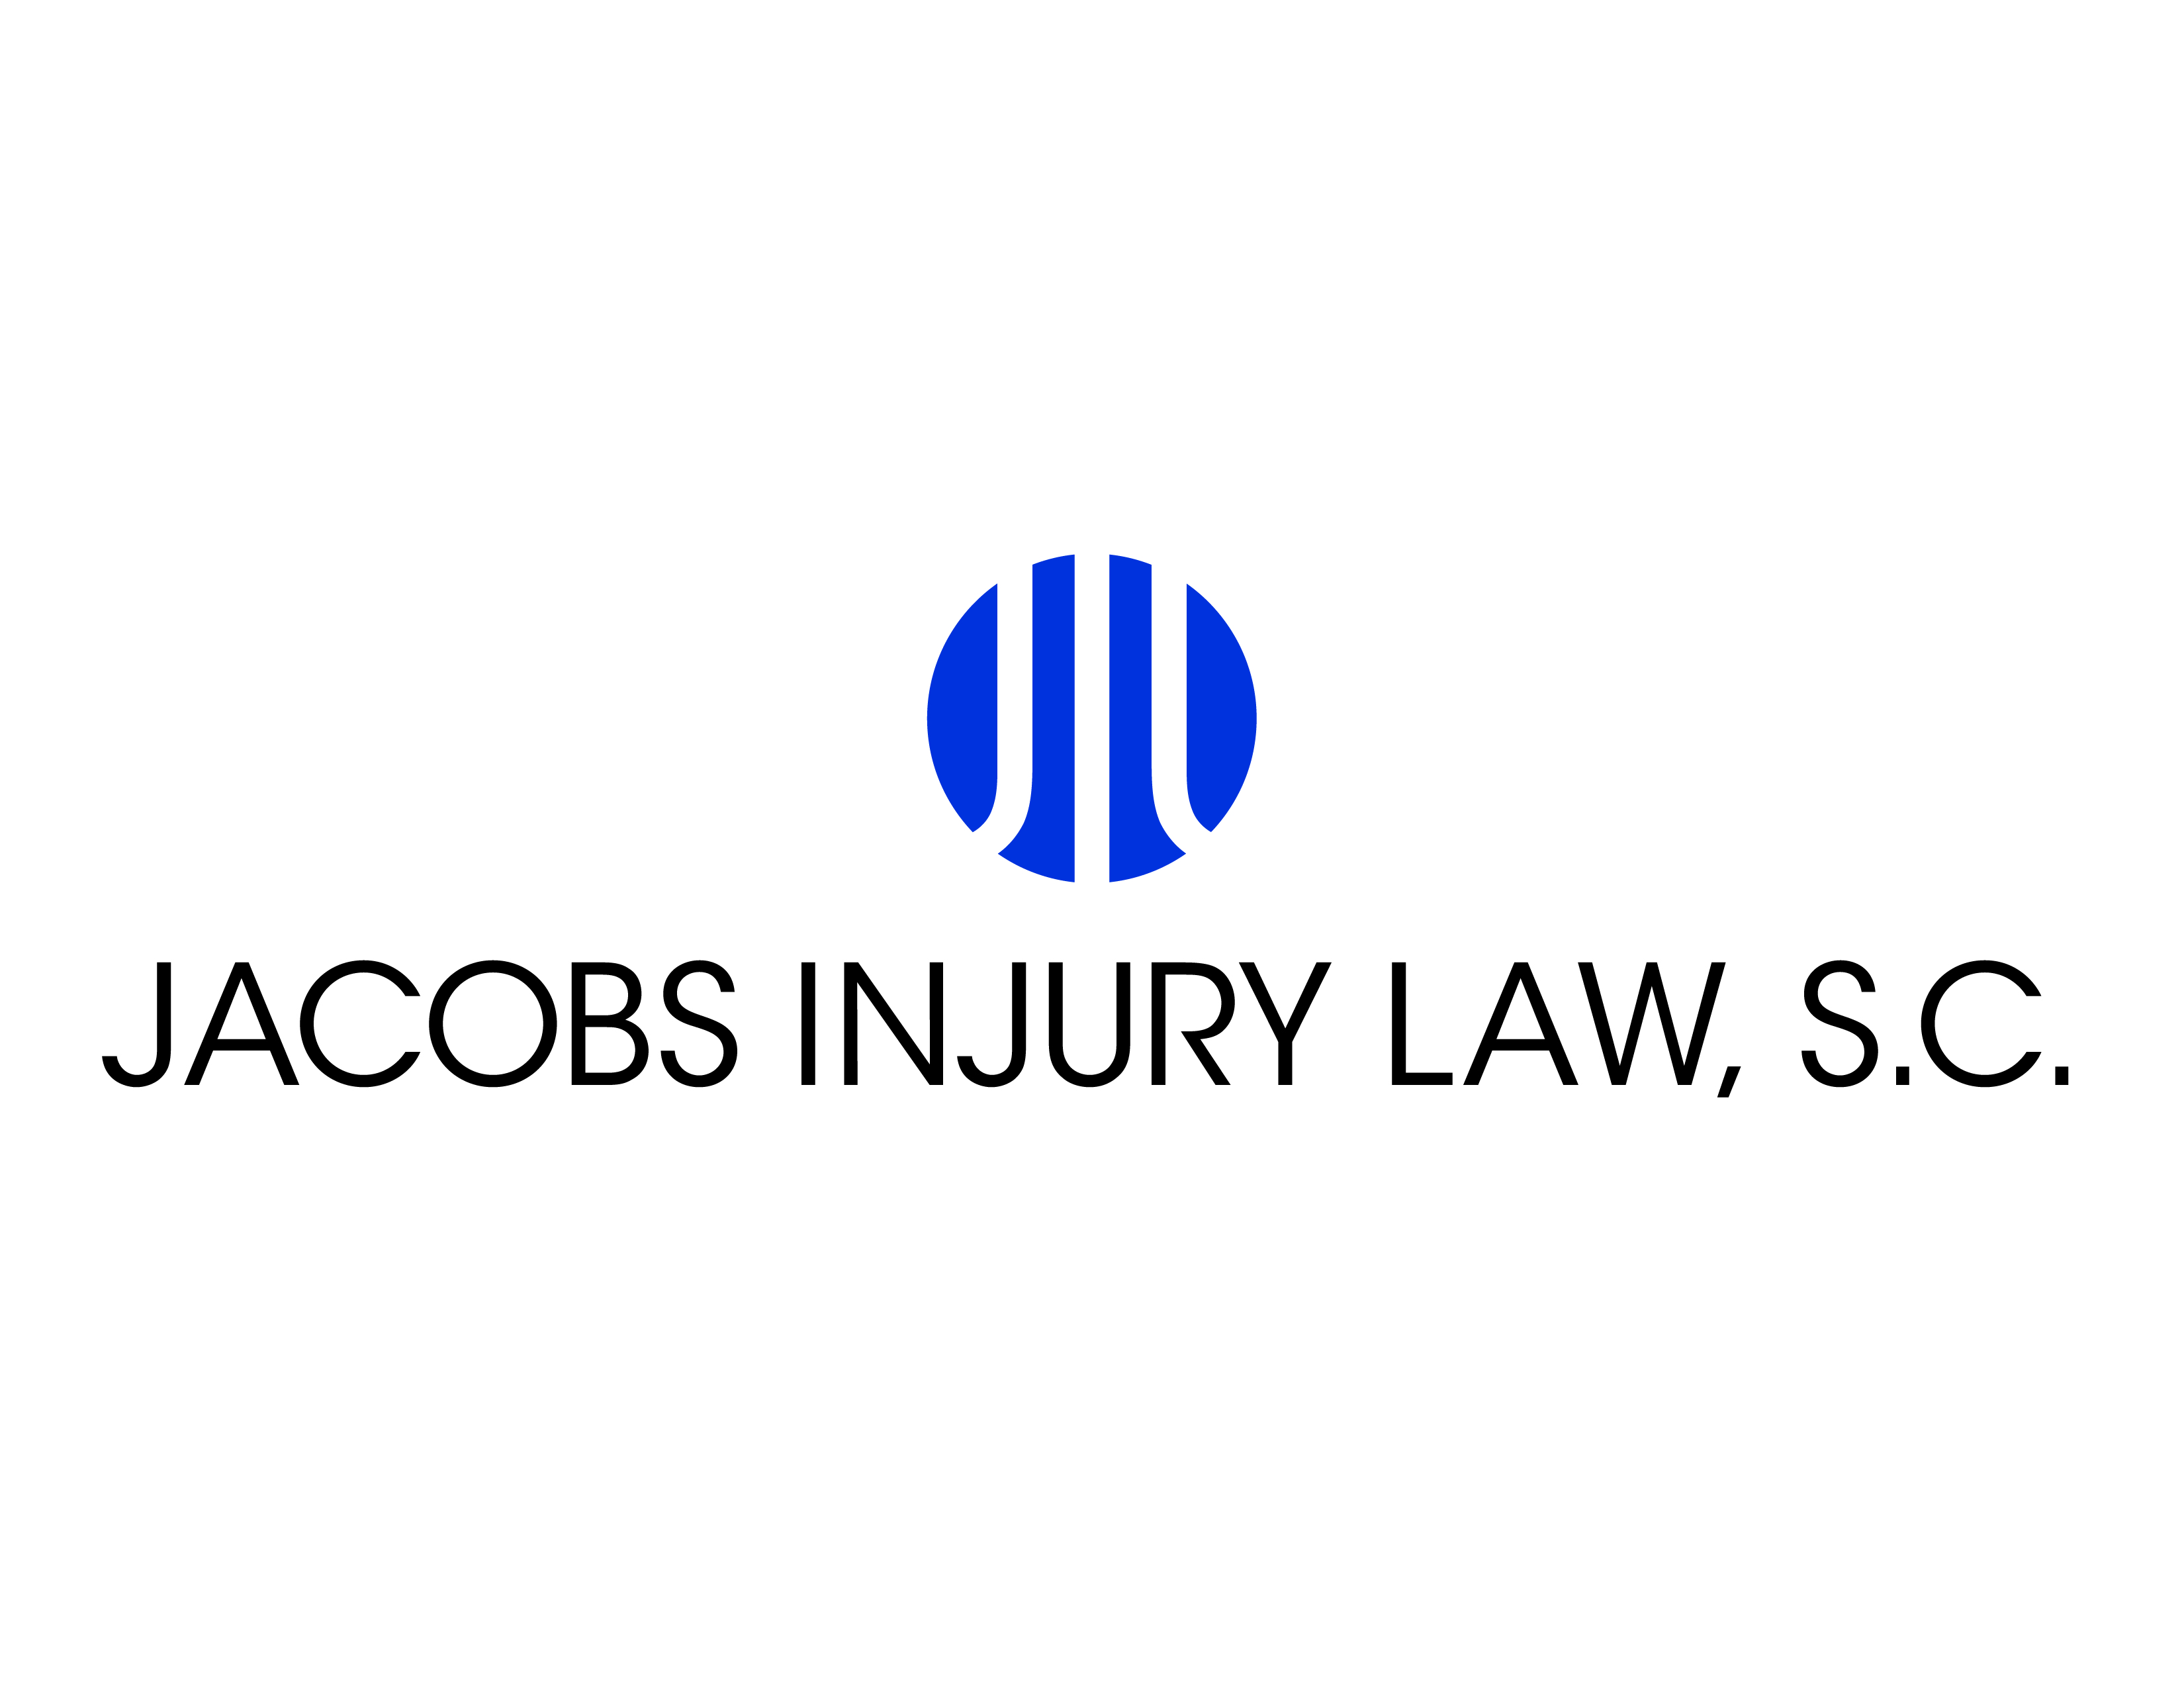 Jacobs Injury Law SC